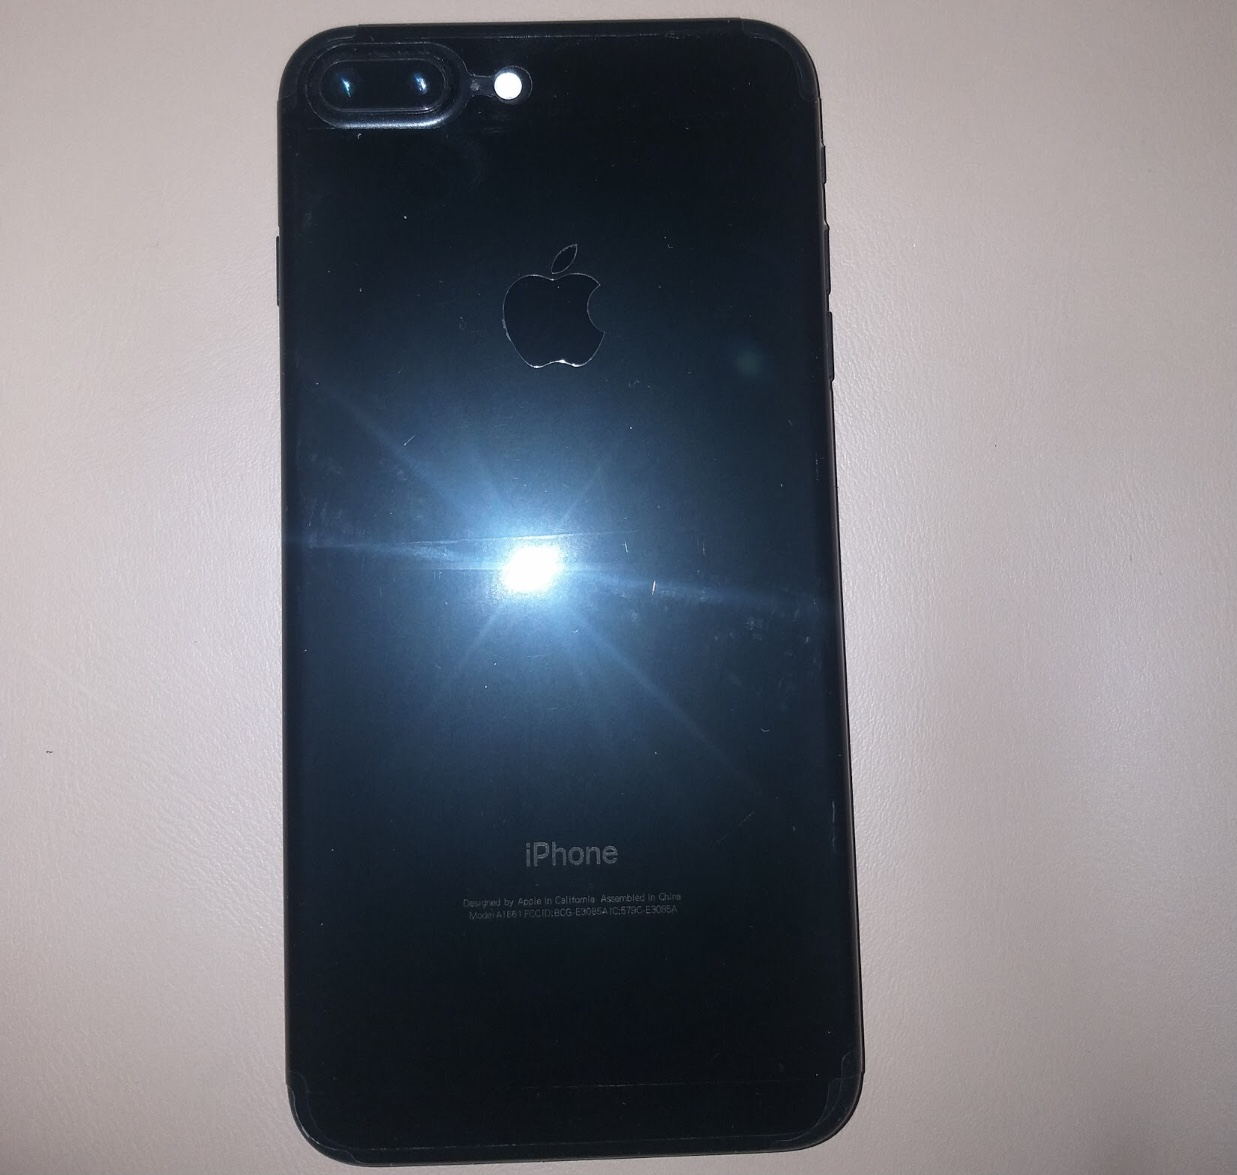 iPhone 7 Plus Pta approve perfect condition with Excellent battery life - photo 1